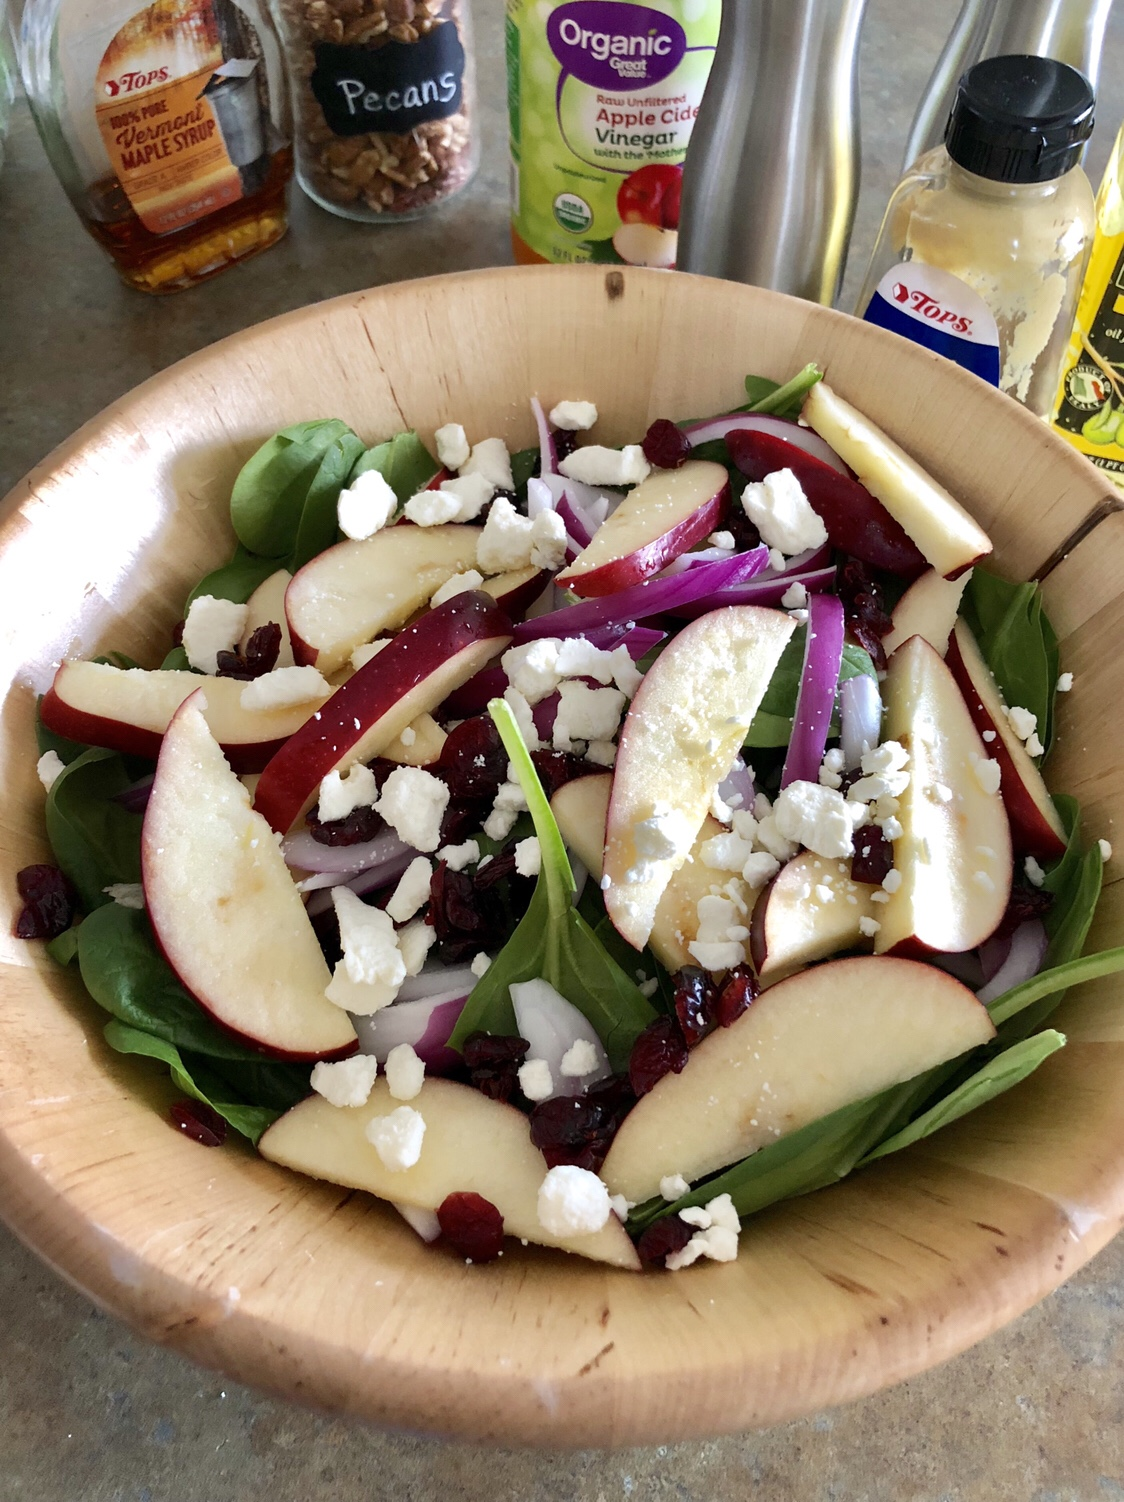 Mix in the feta cheese and the dried cranberries.